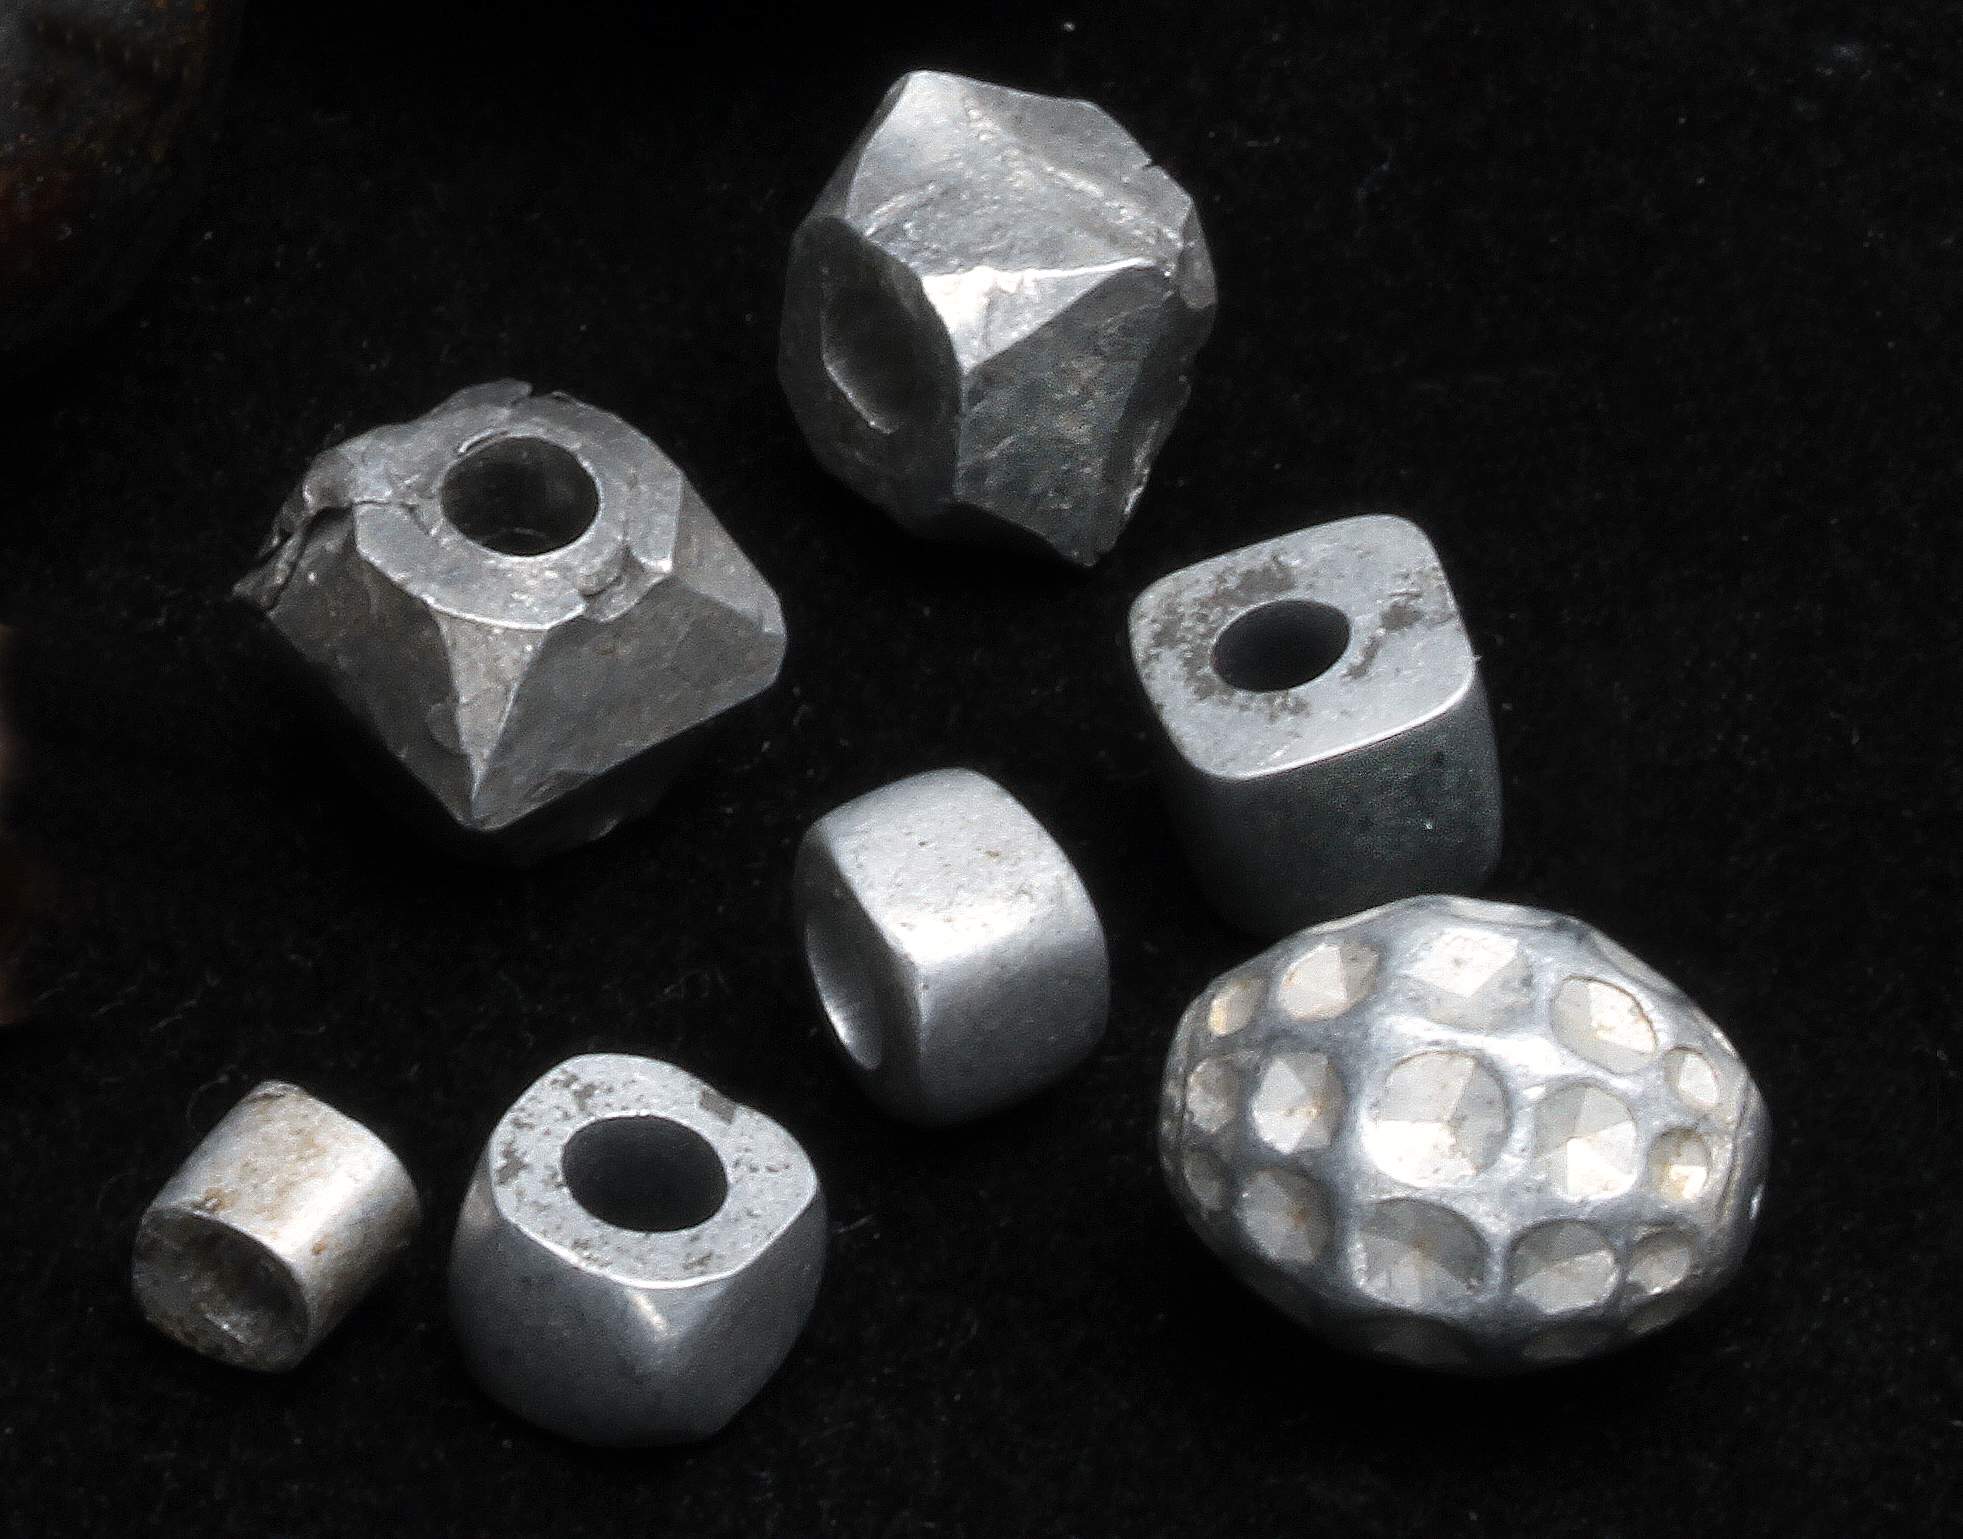 Cast and/or forged aluminum beads from East Africa. RKL